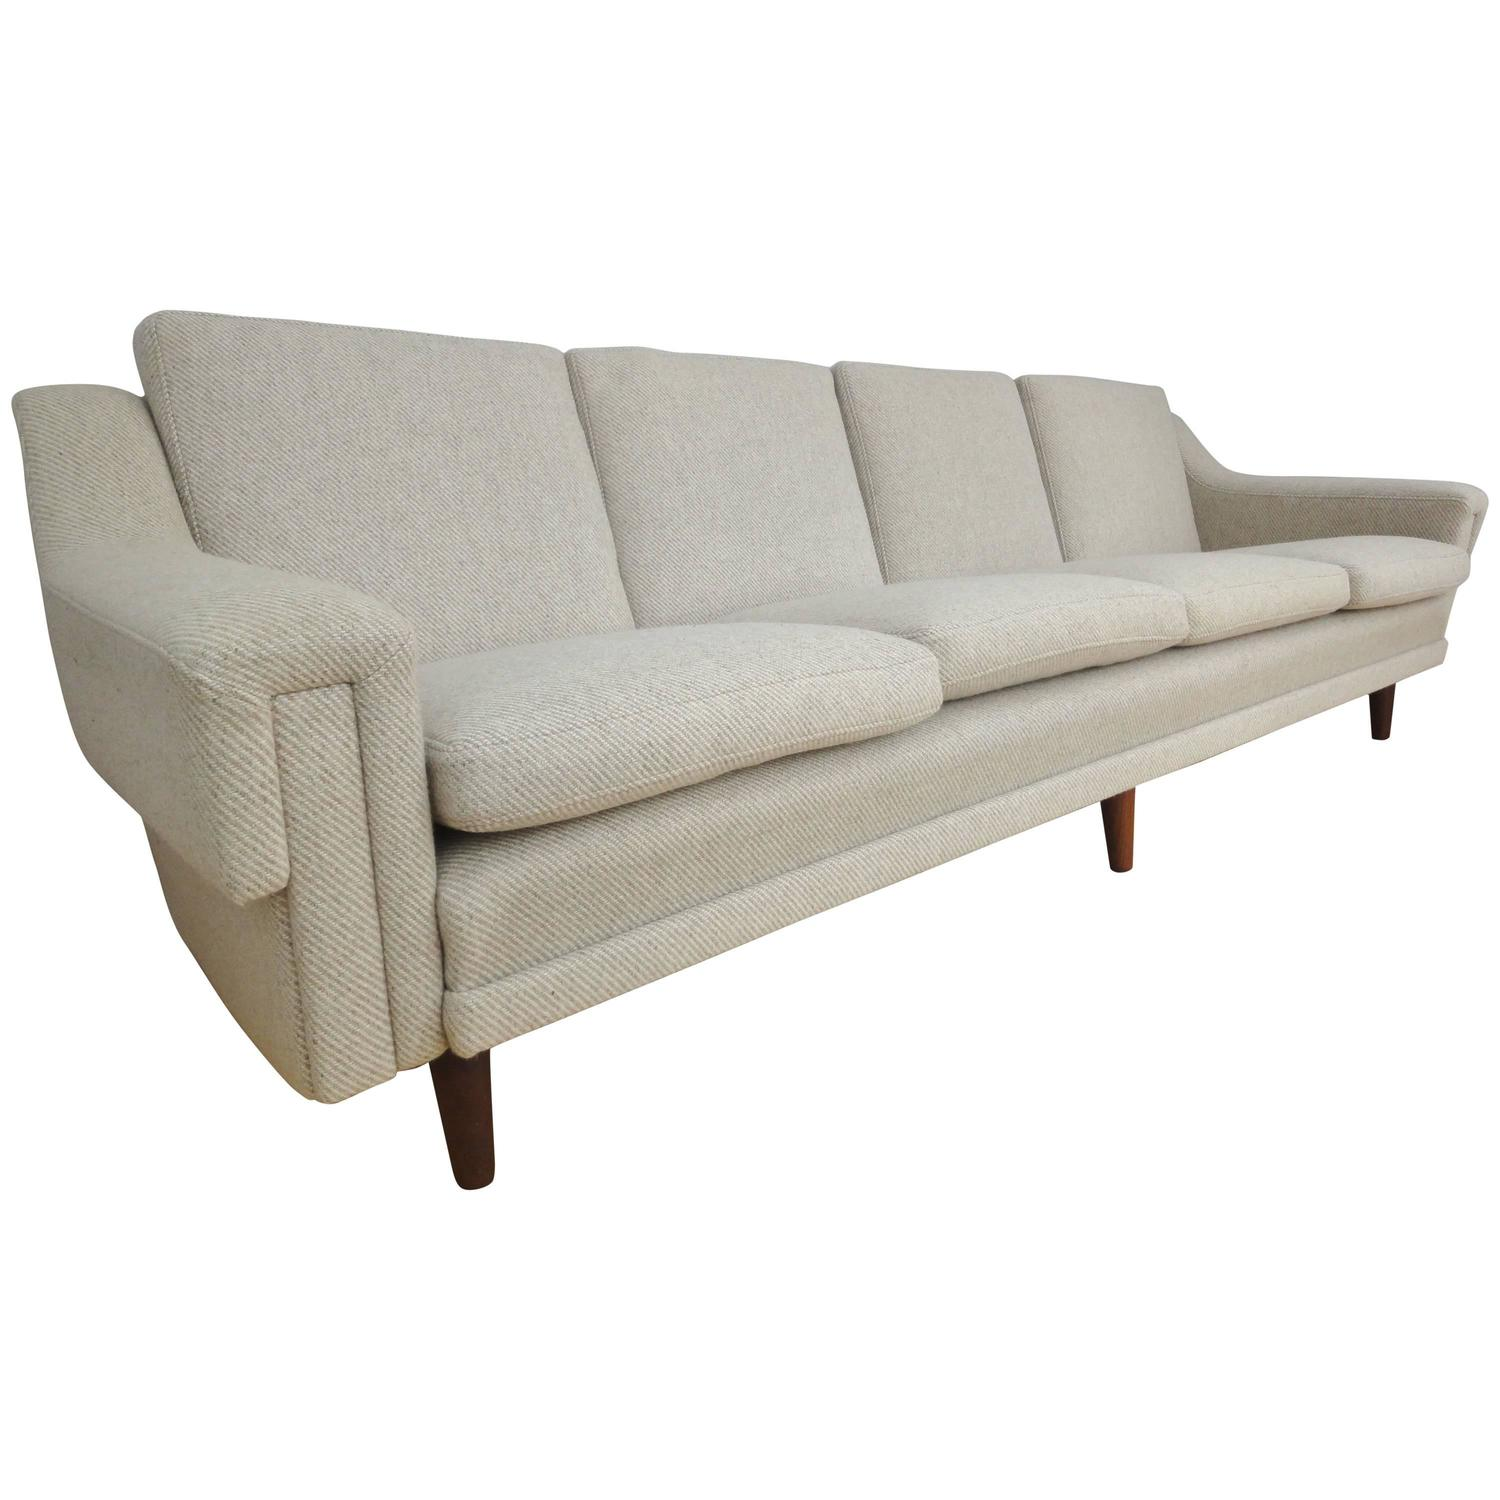 large mid century retro danish wool and teak four seat sofa couch 1950s for sale at 1stdibs. Black Bedroom Furniture Sets. Home Design Ideas